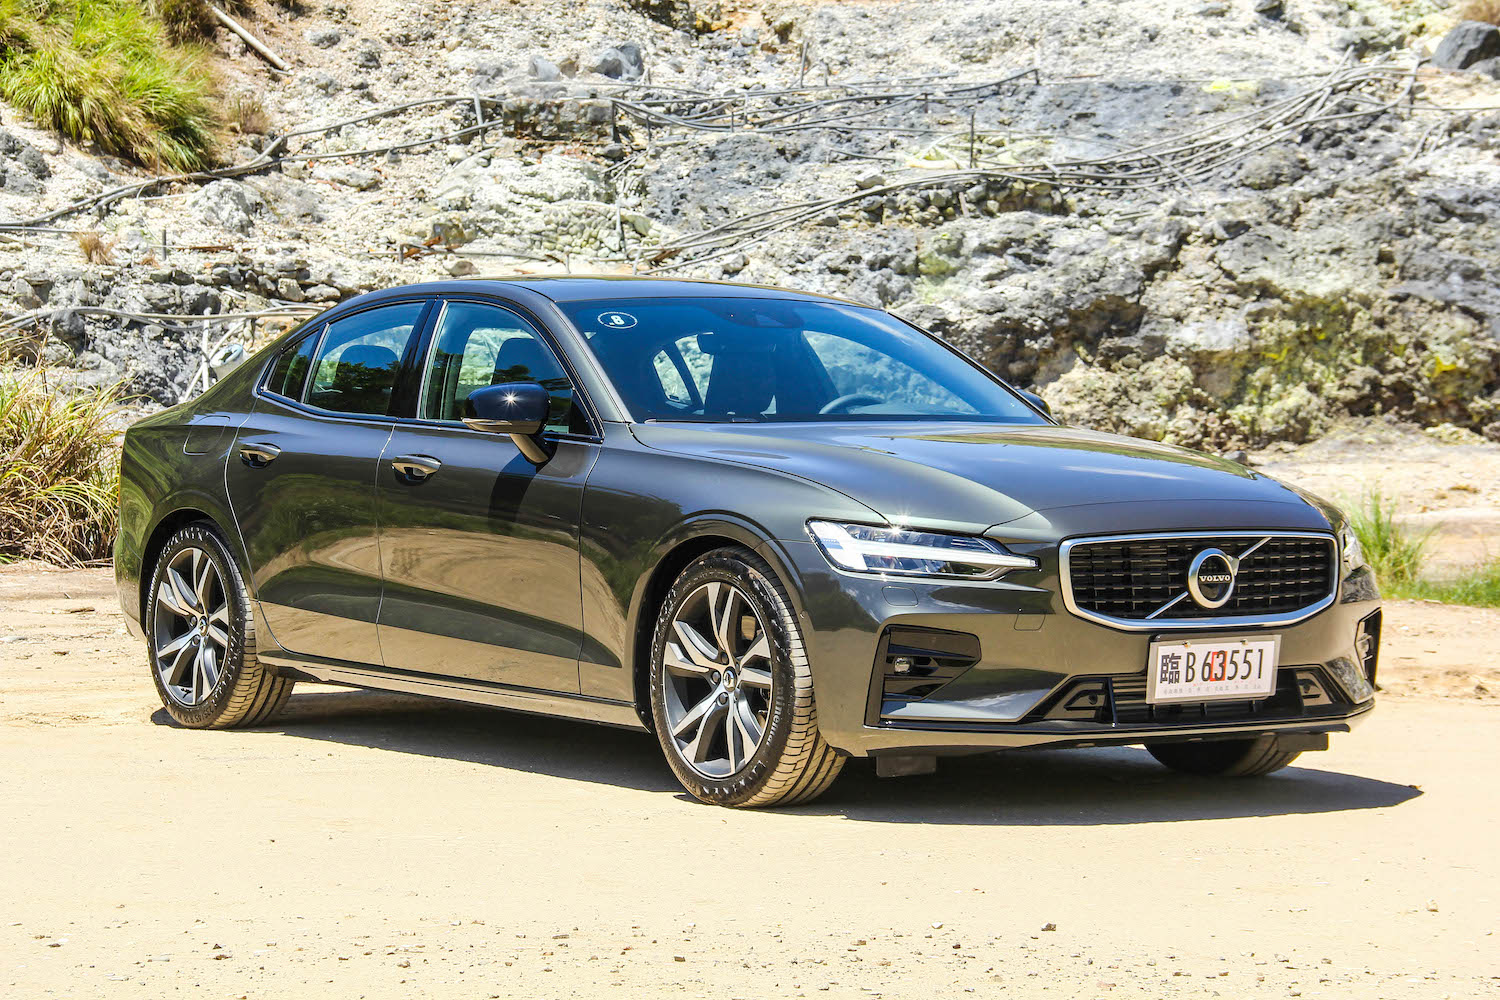 全新 Volvo S60 採三車型配置:T4 Momentum、T5 R-Design、T6 Twin Engine Inscription,售價分別為 185、220、271 萬元。